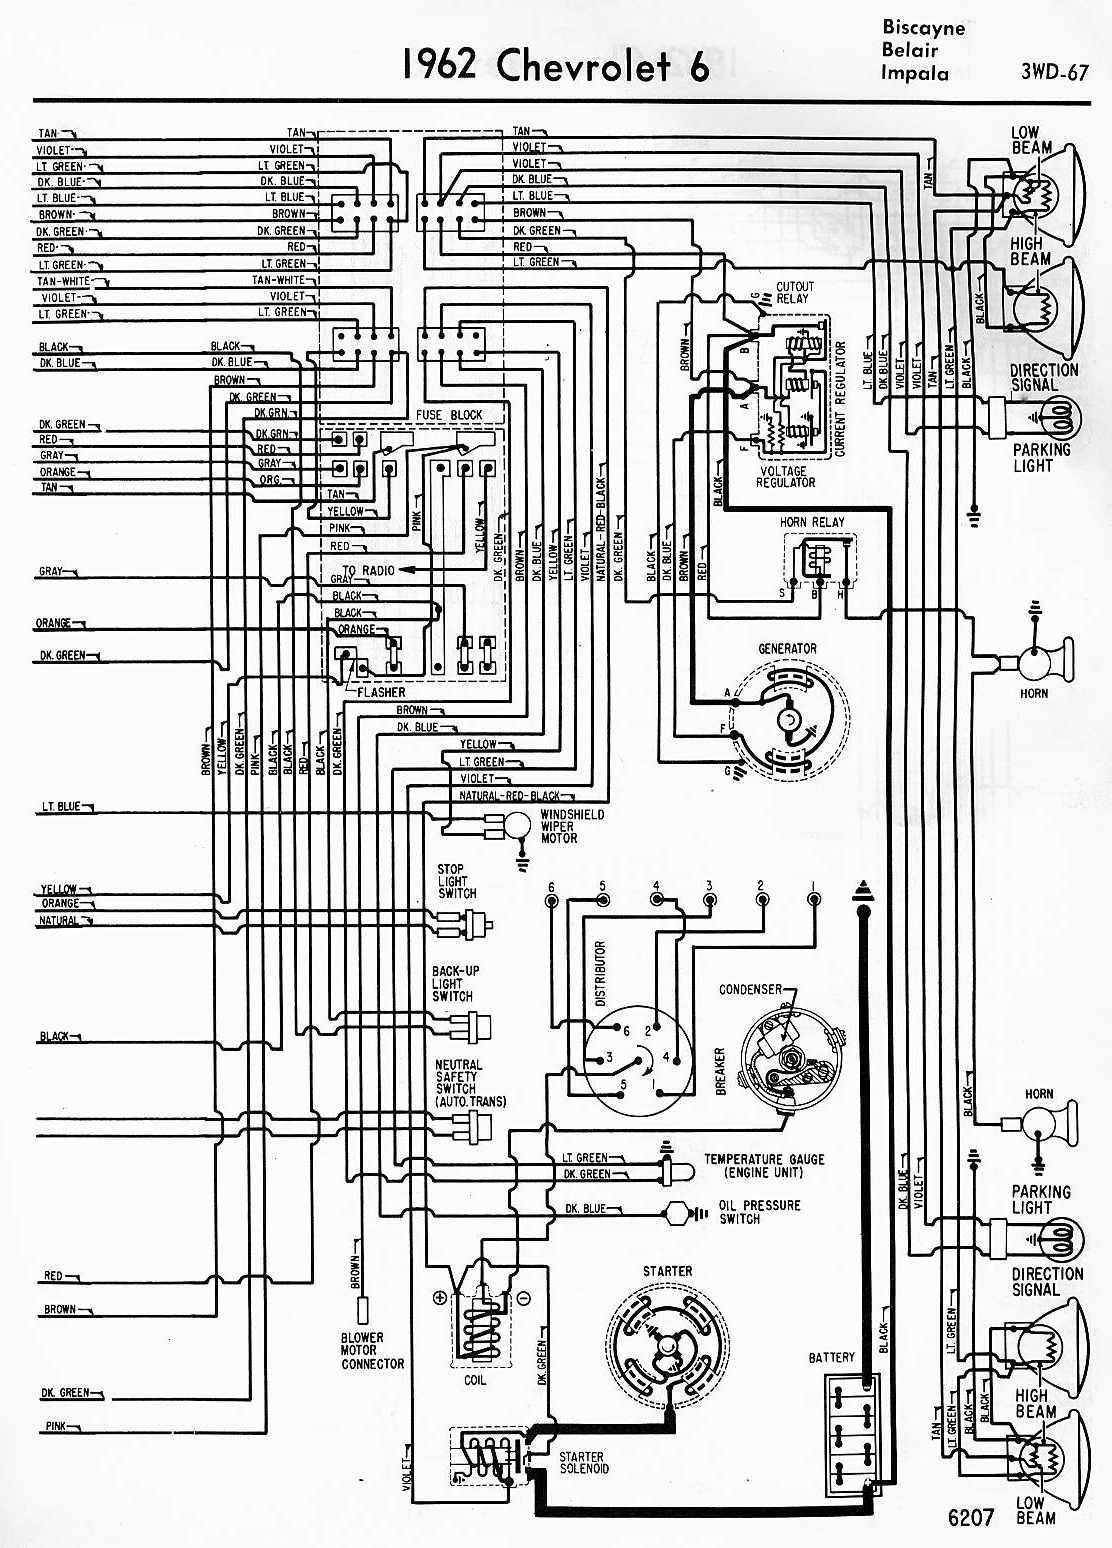 Jeep Cj5 Gauge Wiring Another Blog About Diagram Chevy Fuel Electrical Of 1962 Chevrolet 6 All Cj Oil 1976